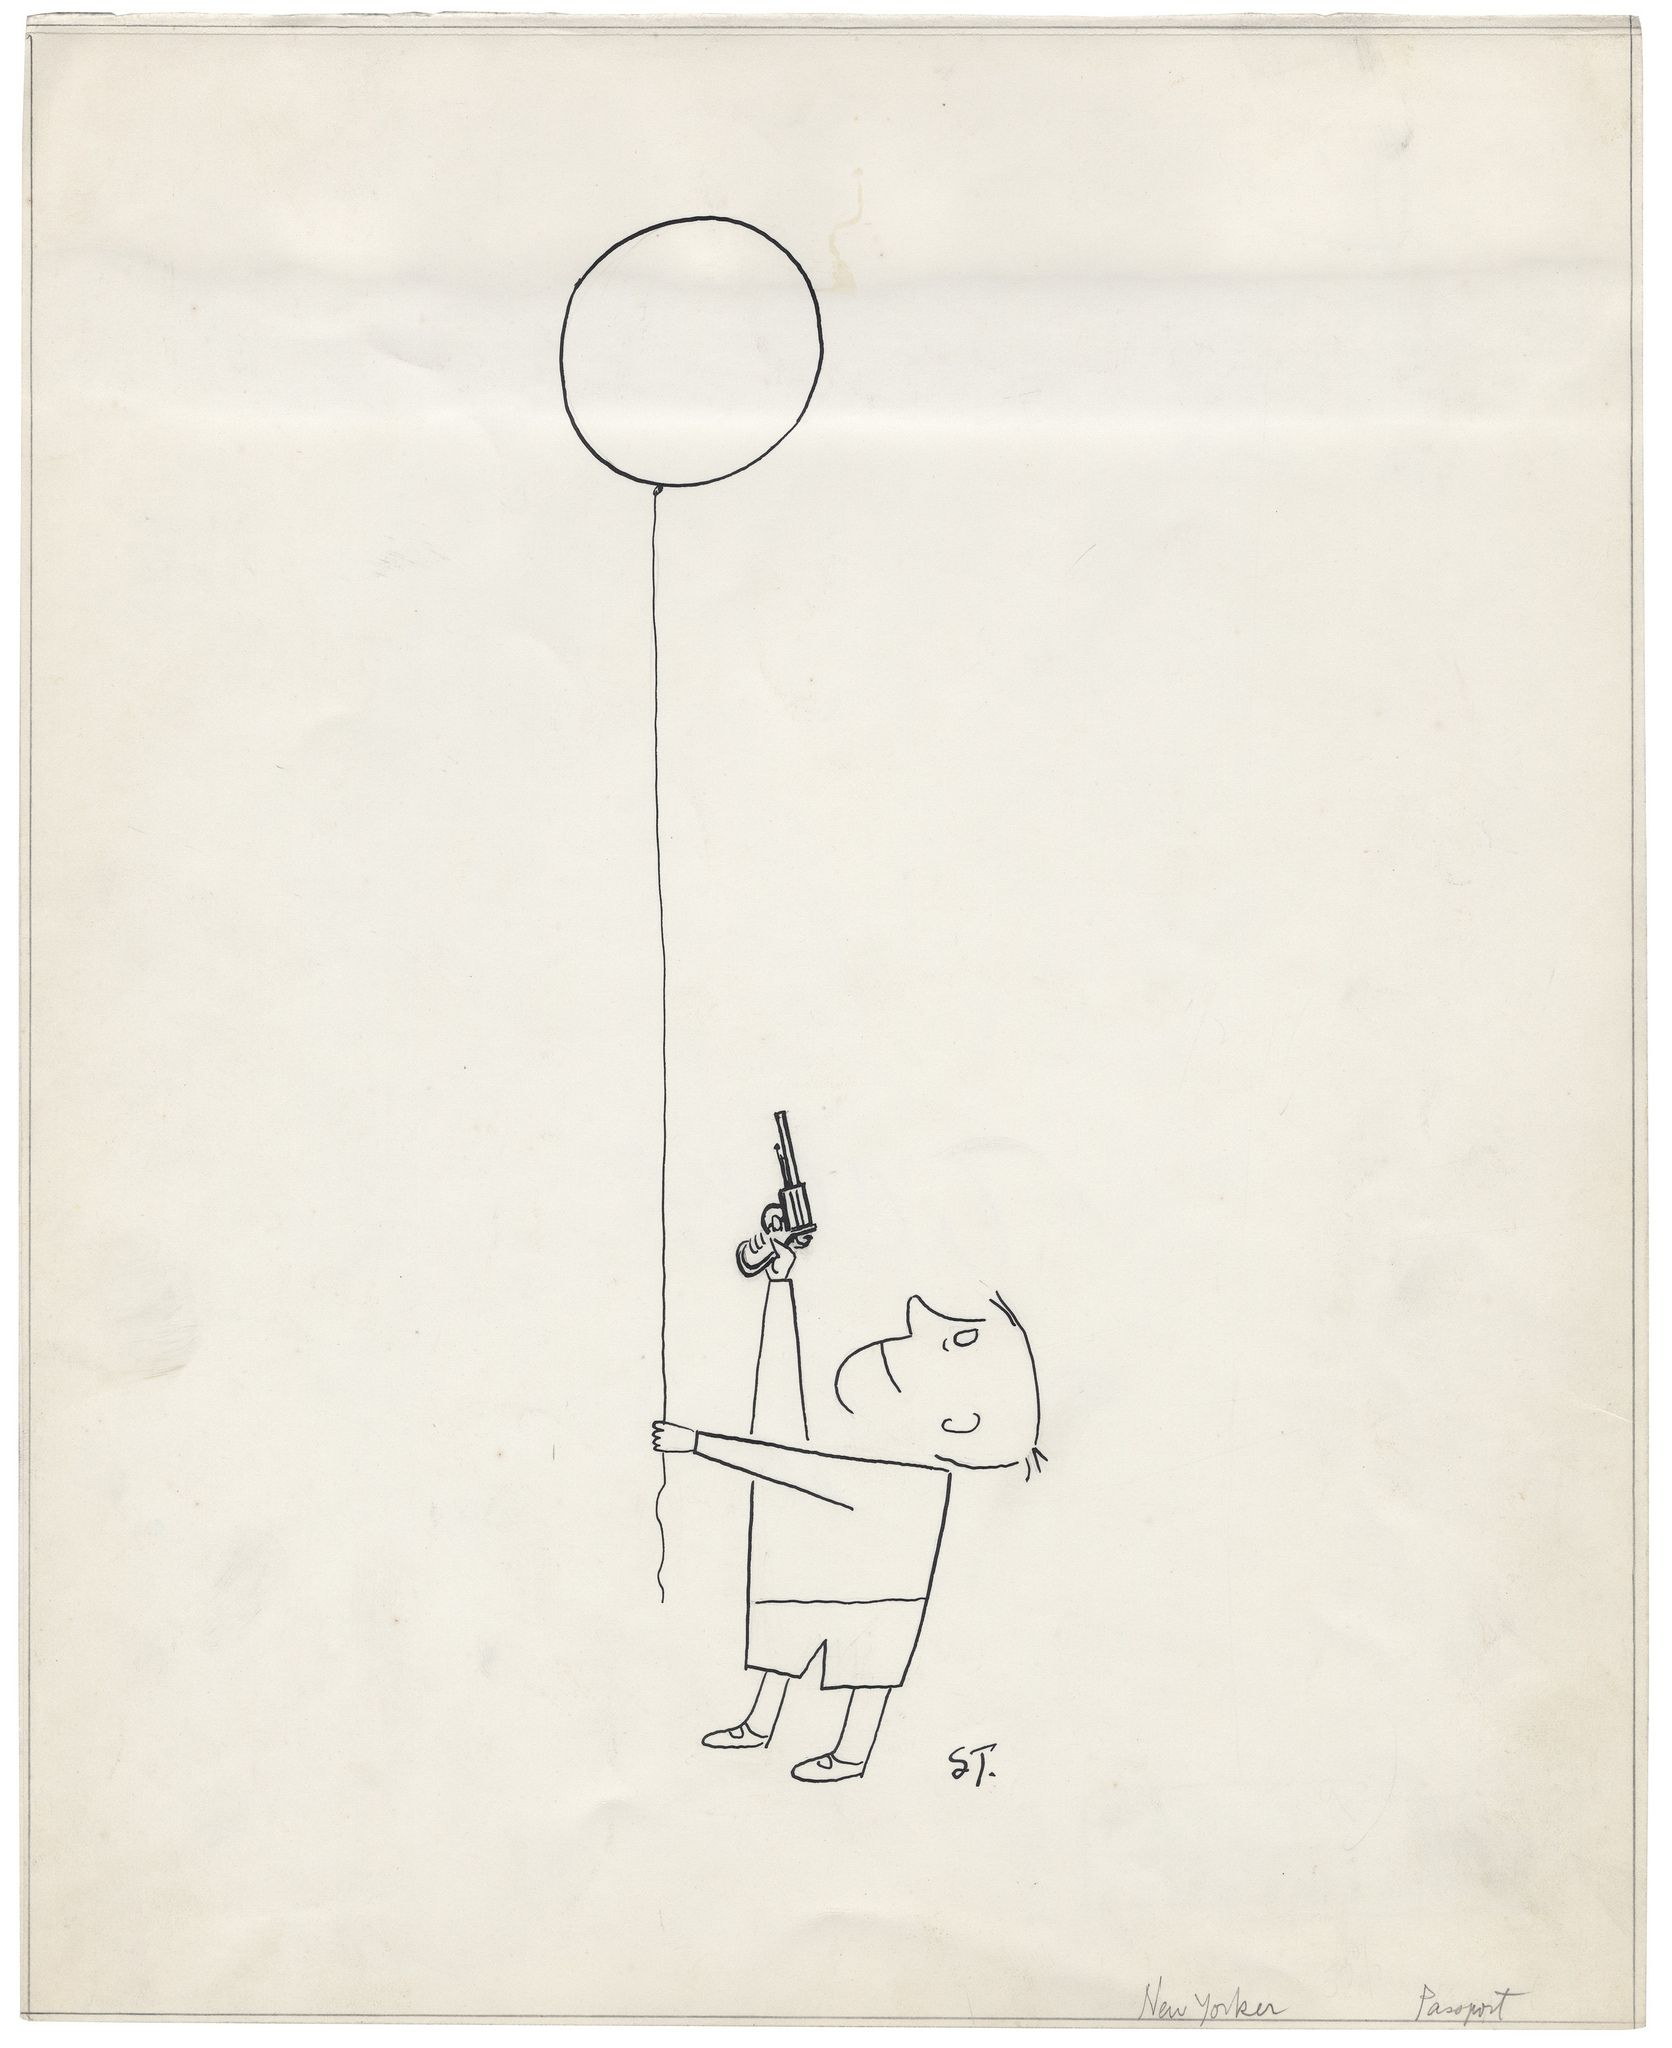 ¤ Saul Steinberg, Untitled, 1951. Ink on paper, 36.2 x 29.5 cm. Beinecke Rare Book and Manuscript Library, Yale University. Originally published in The New Yorker, November 17, 1951.